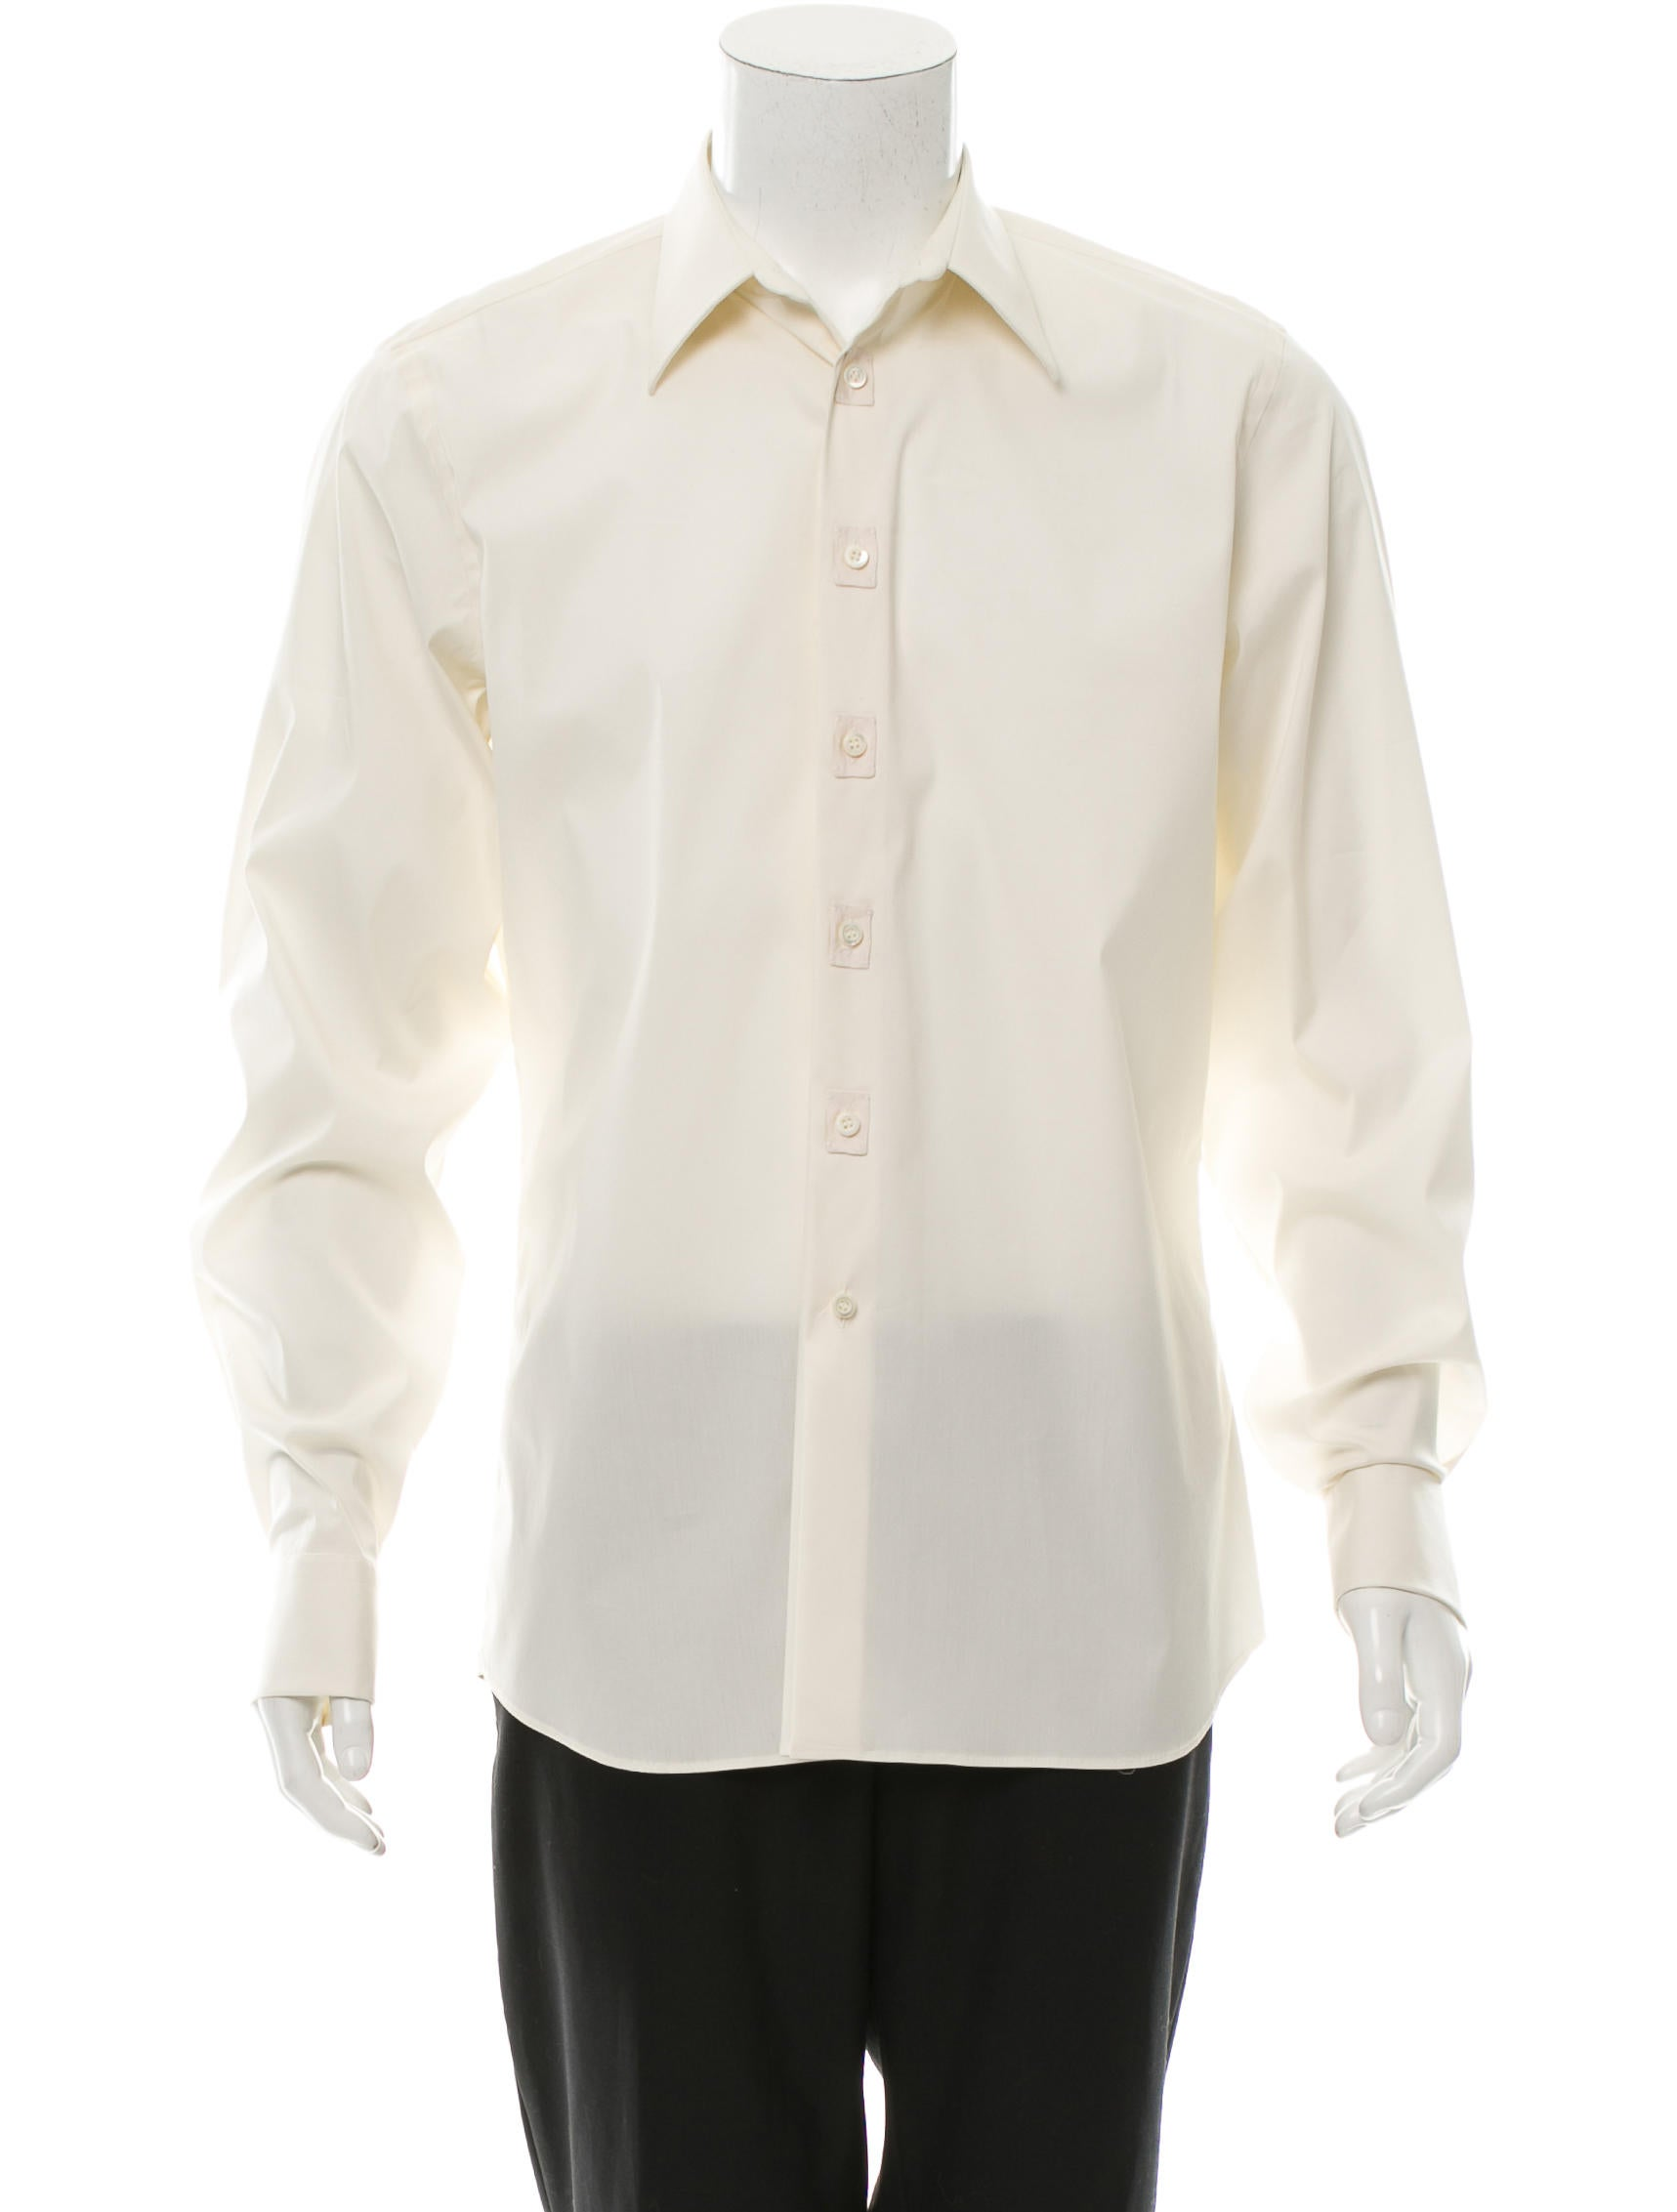 prada embroidered button up shirt clothing pra111506